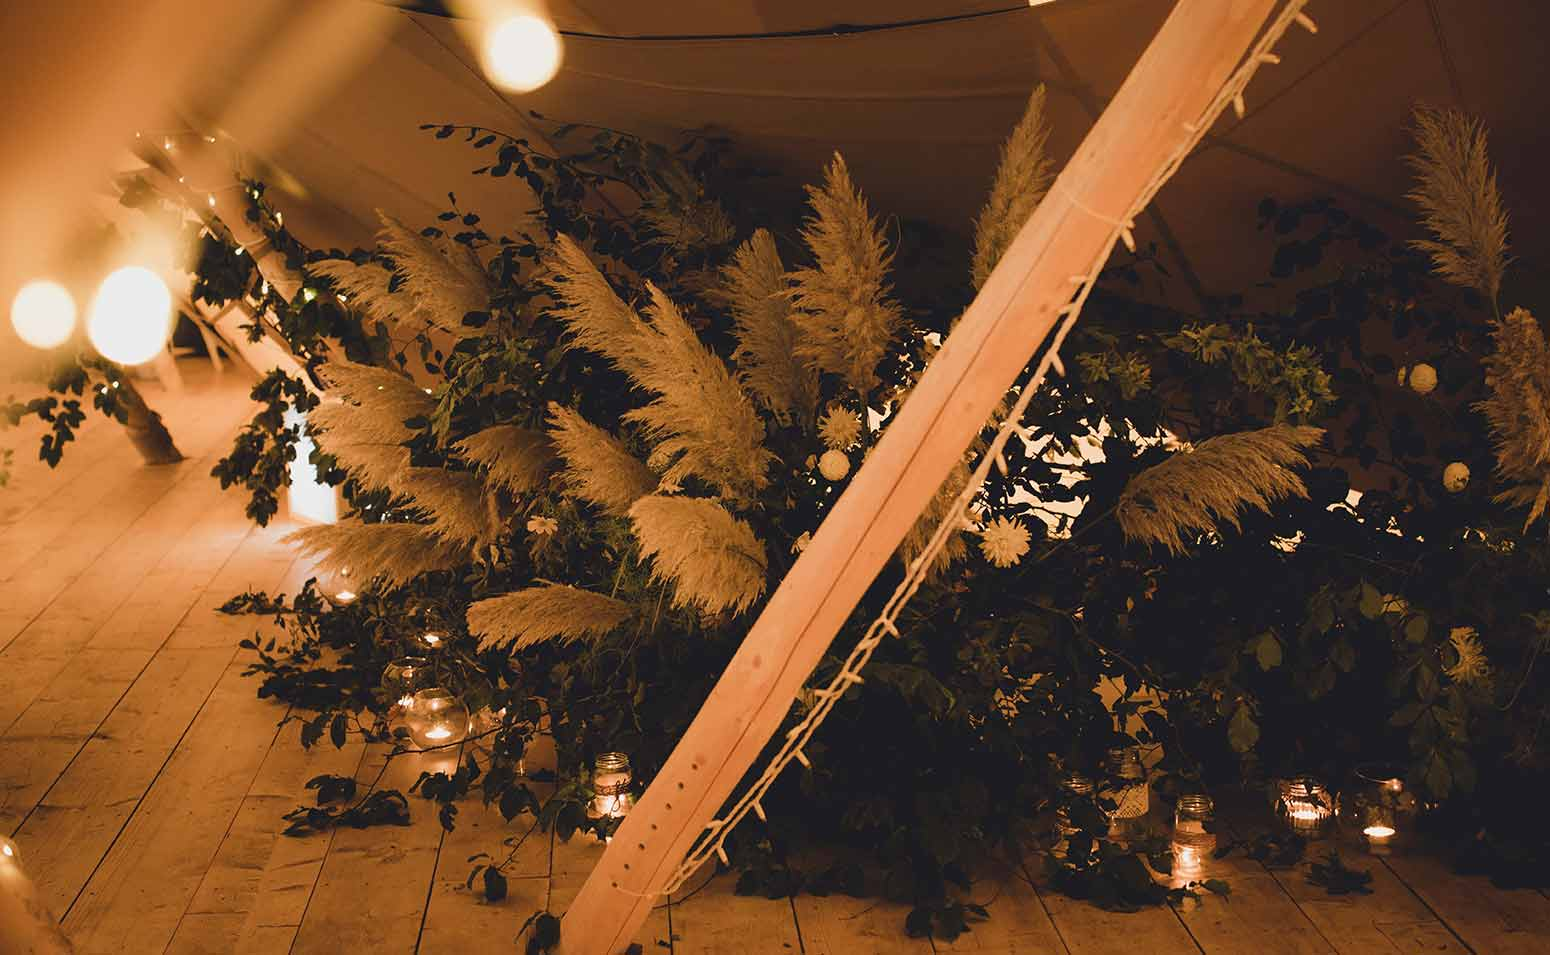 Floral installation of greenery and pampas in a tipi Image © SarahSalottiPhotography